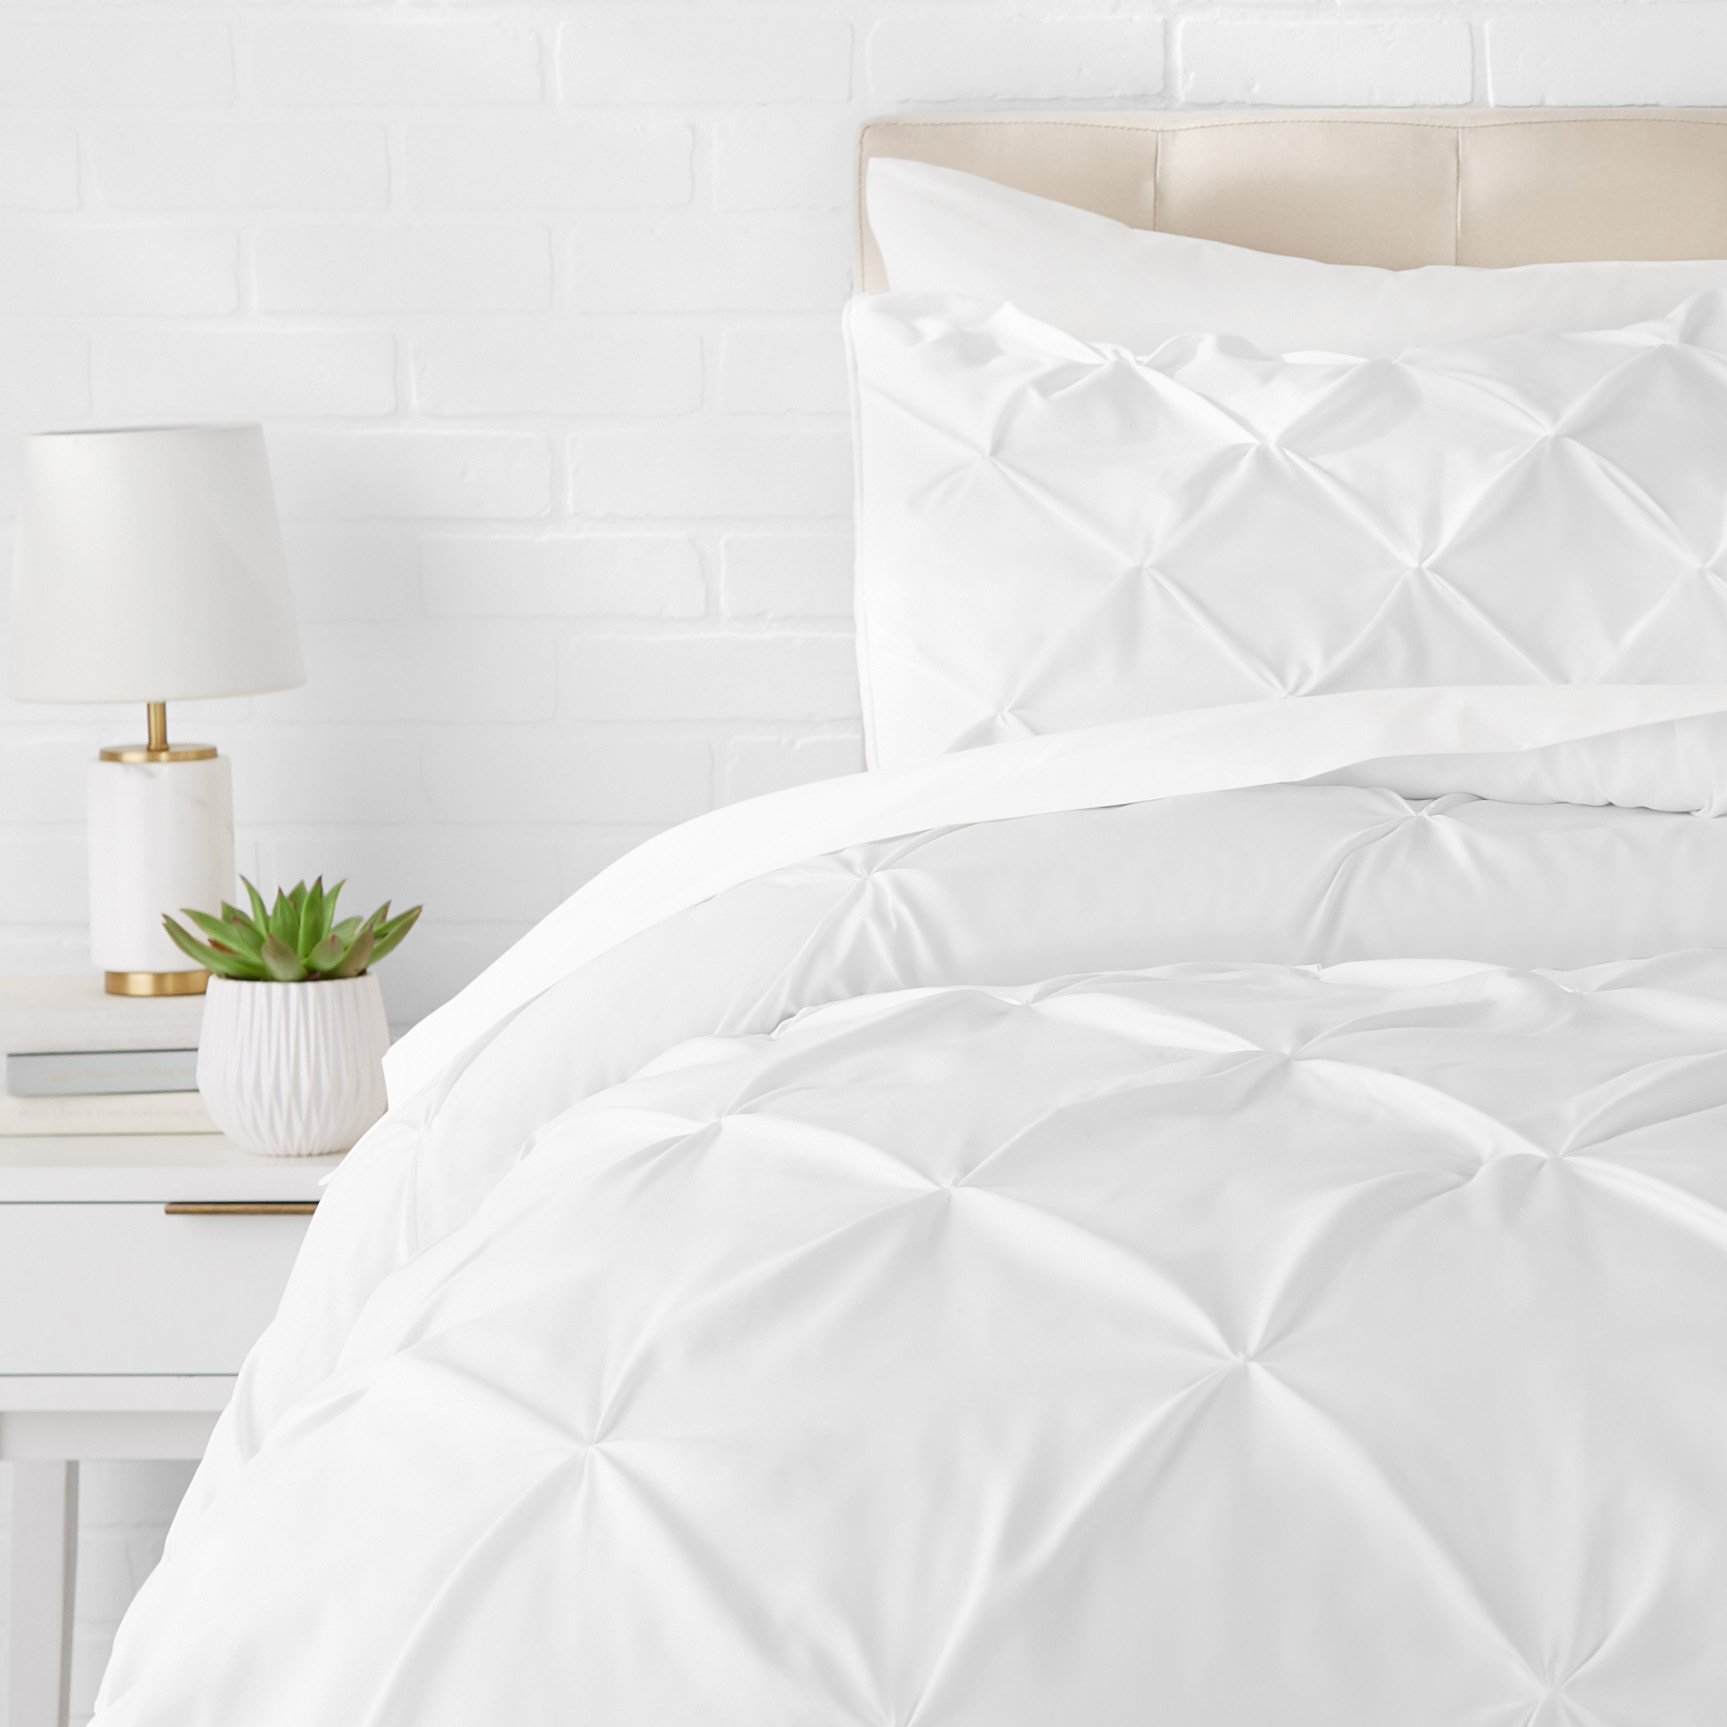 AmazonBasics Pinch Pleat Comforter Set - Twin, Bright White by AmazonBasics